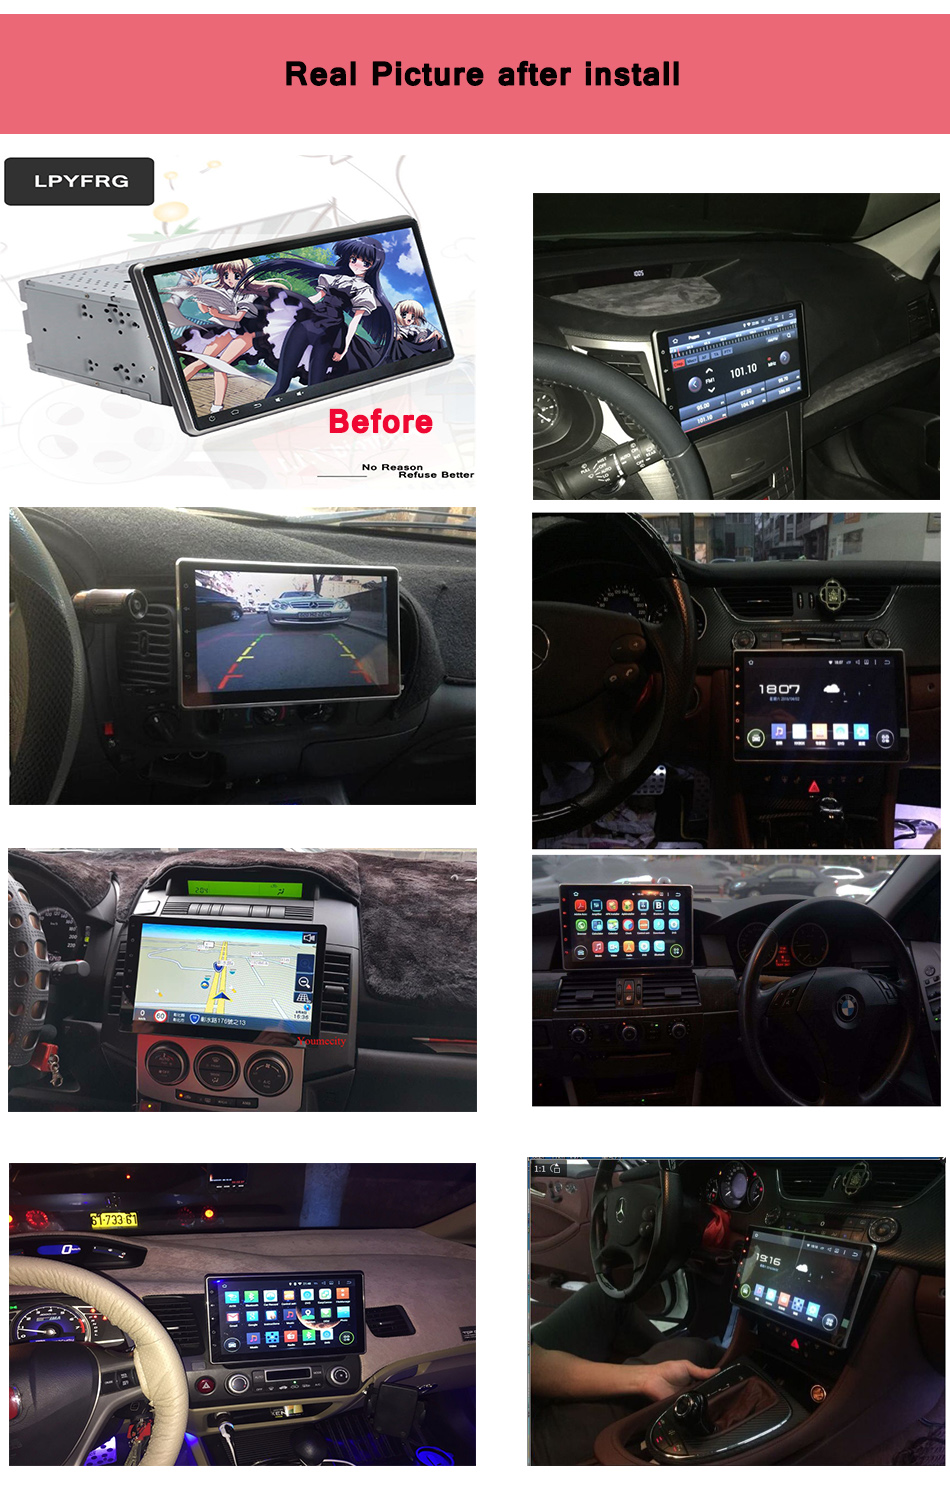 10.1 Inch Android 7.1 3G/4G LTE wholesale 2 din auto radio car dvd for universal car radio gps navigation With Remote Control